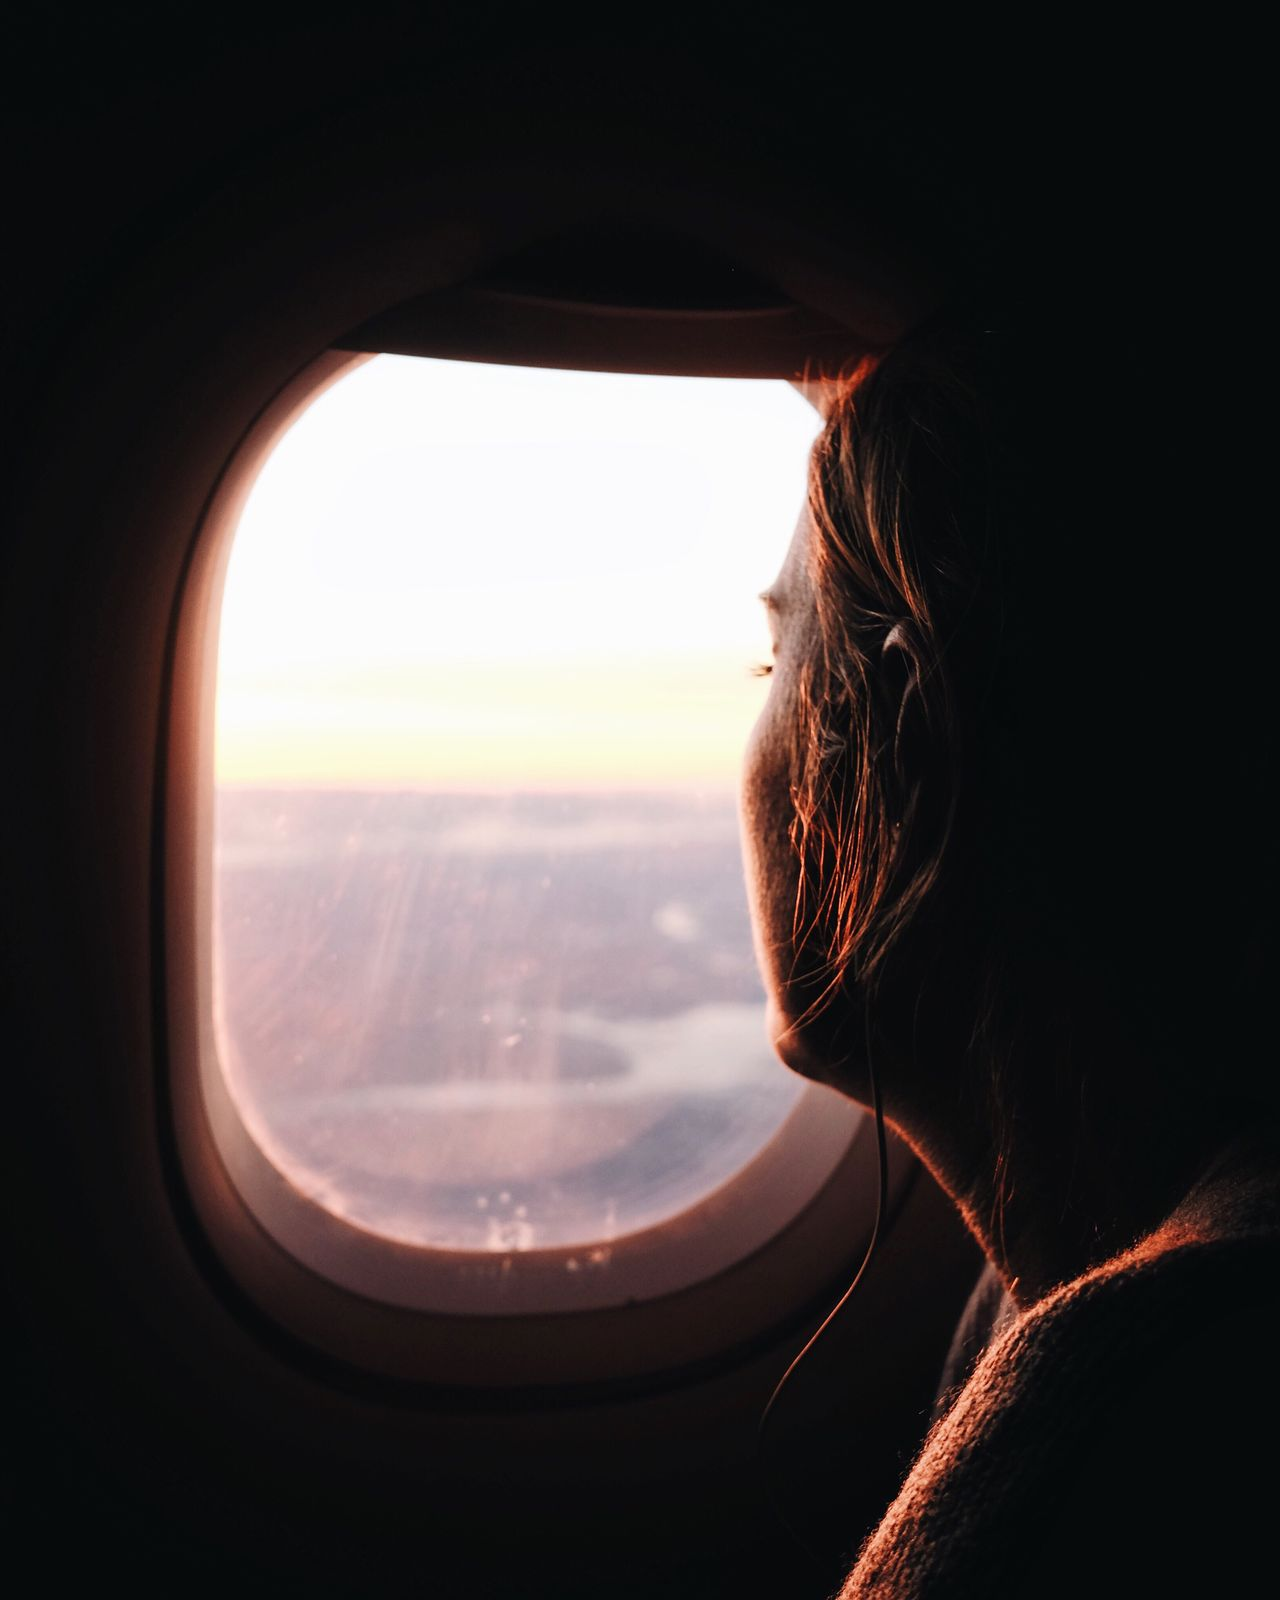 Traveling Home For The Holidays Window Journey Transportation Flying Vehicle Interior Looking Through Window One Person Women Real People Sky Airplane Day Nature Landscape Close-up Adult People Young Adult Outdoors